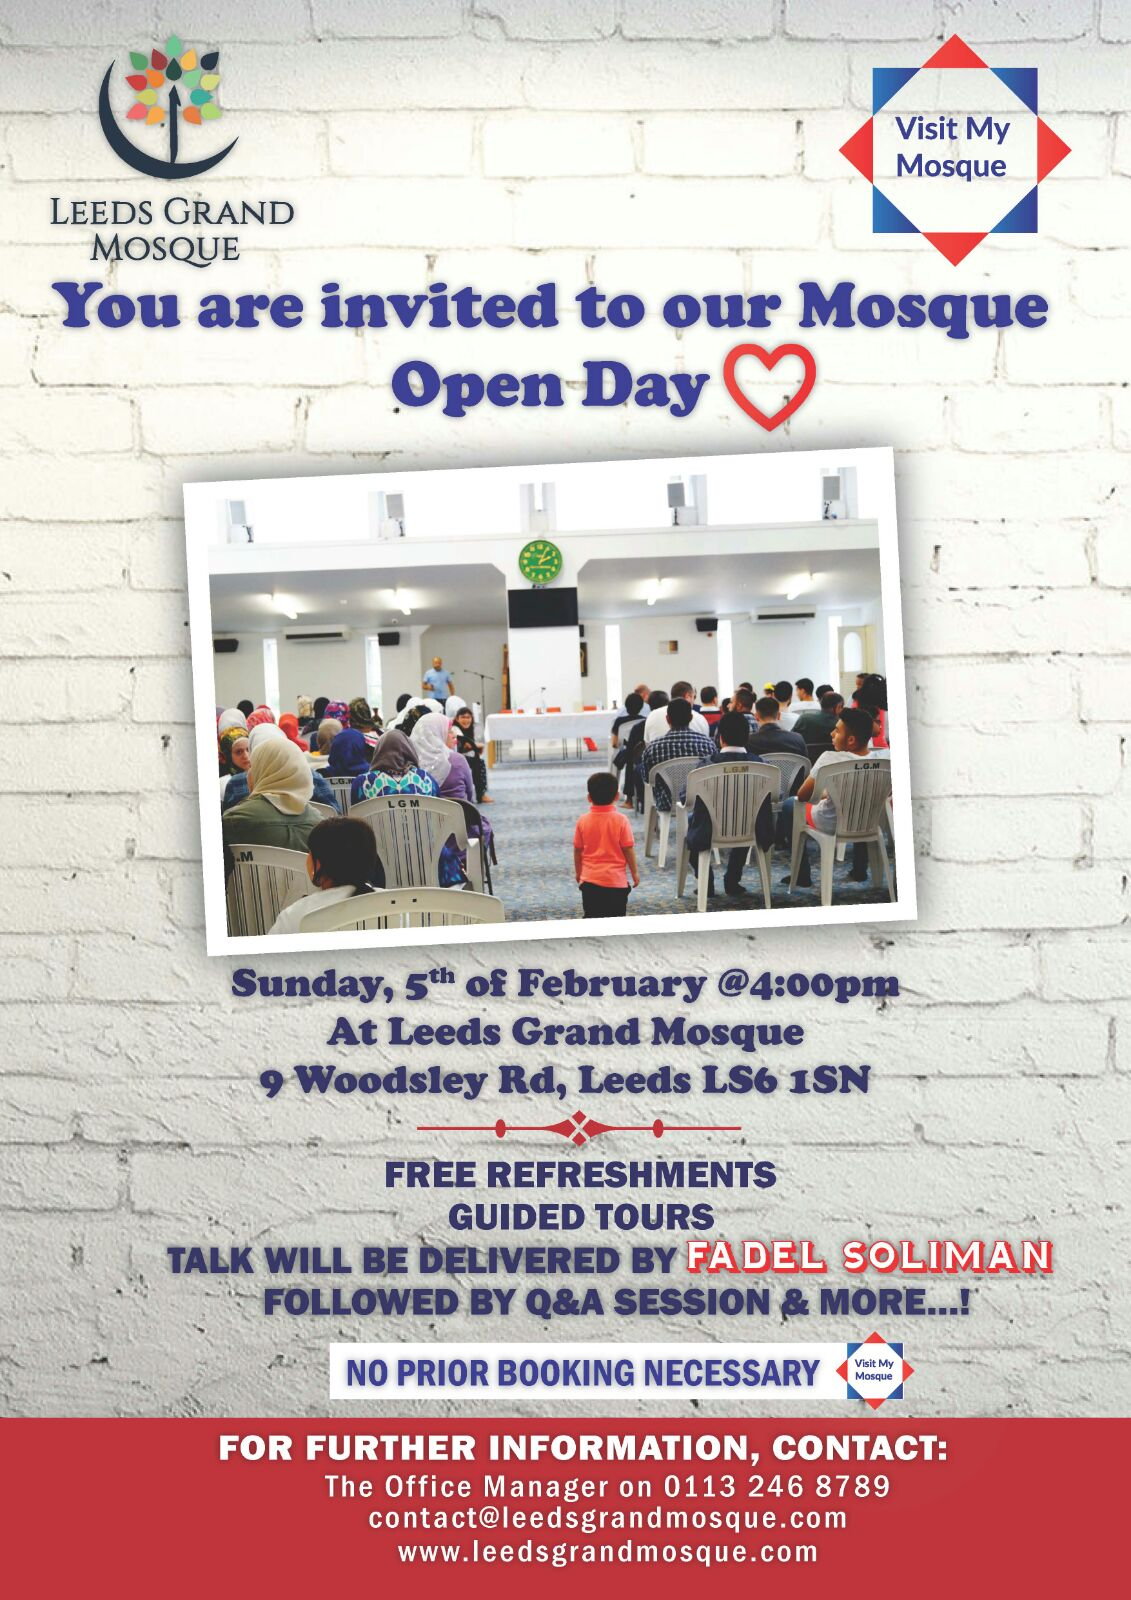 Visit My Mosque - Leeds